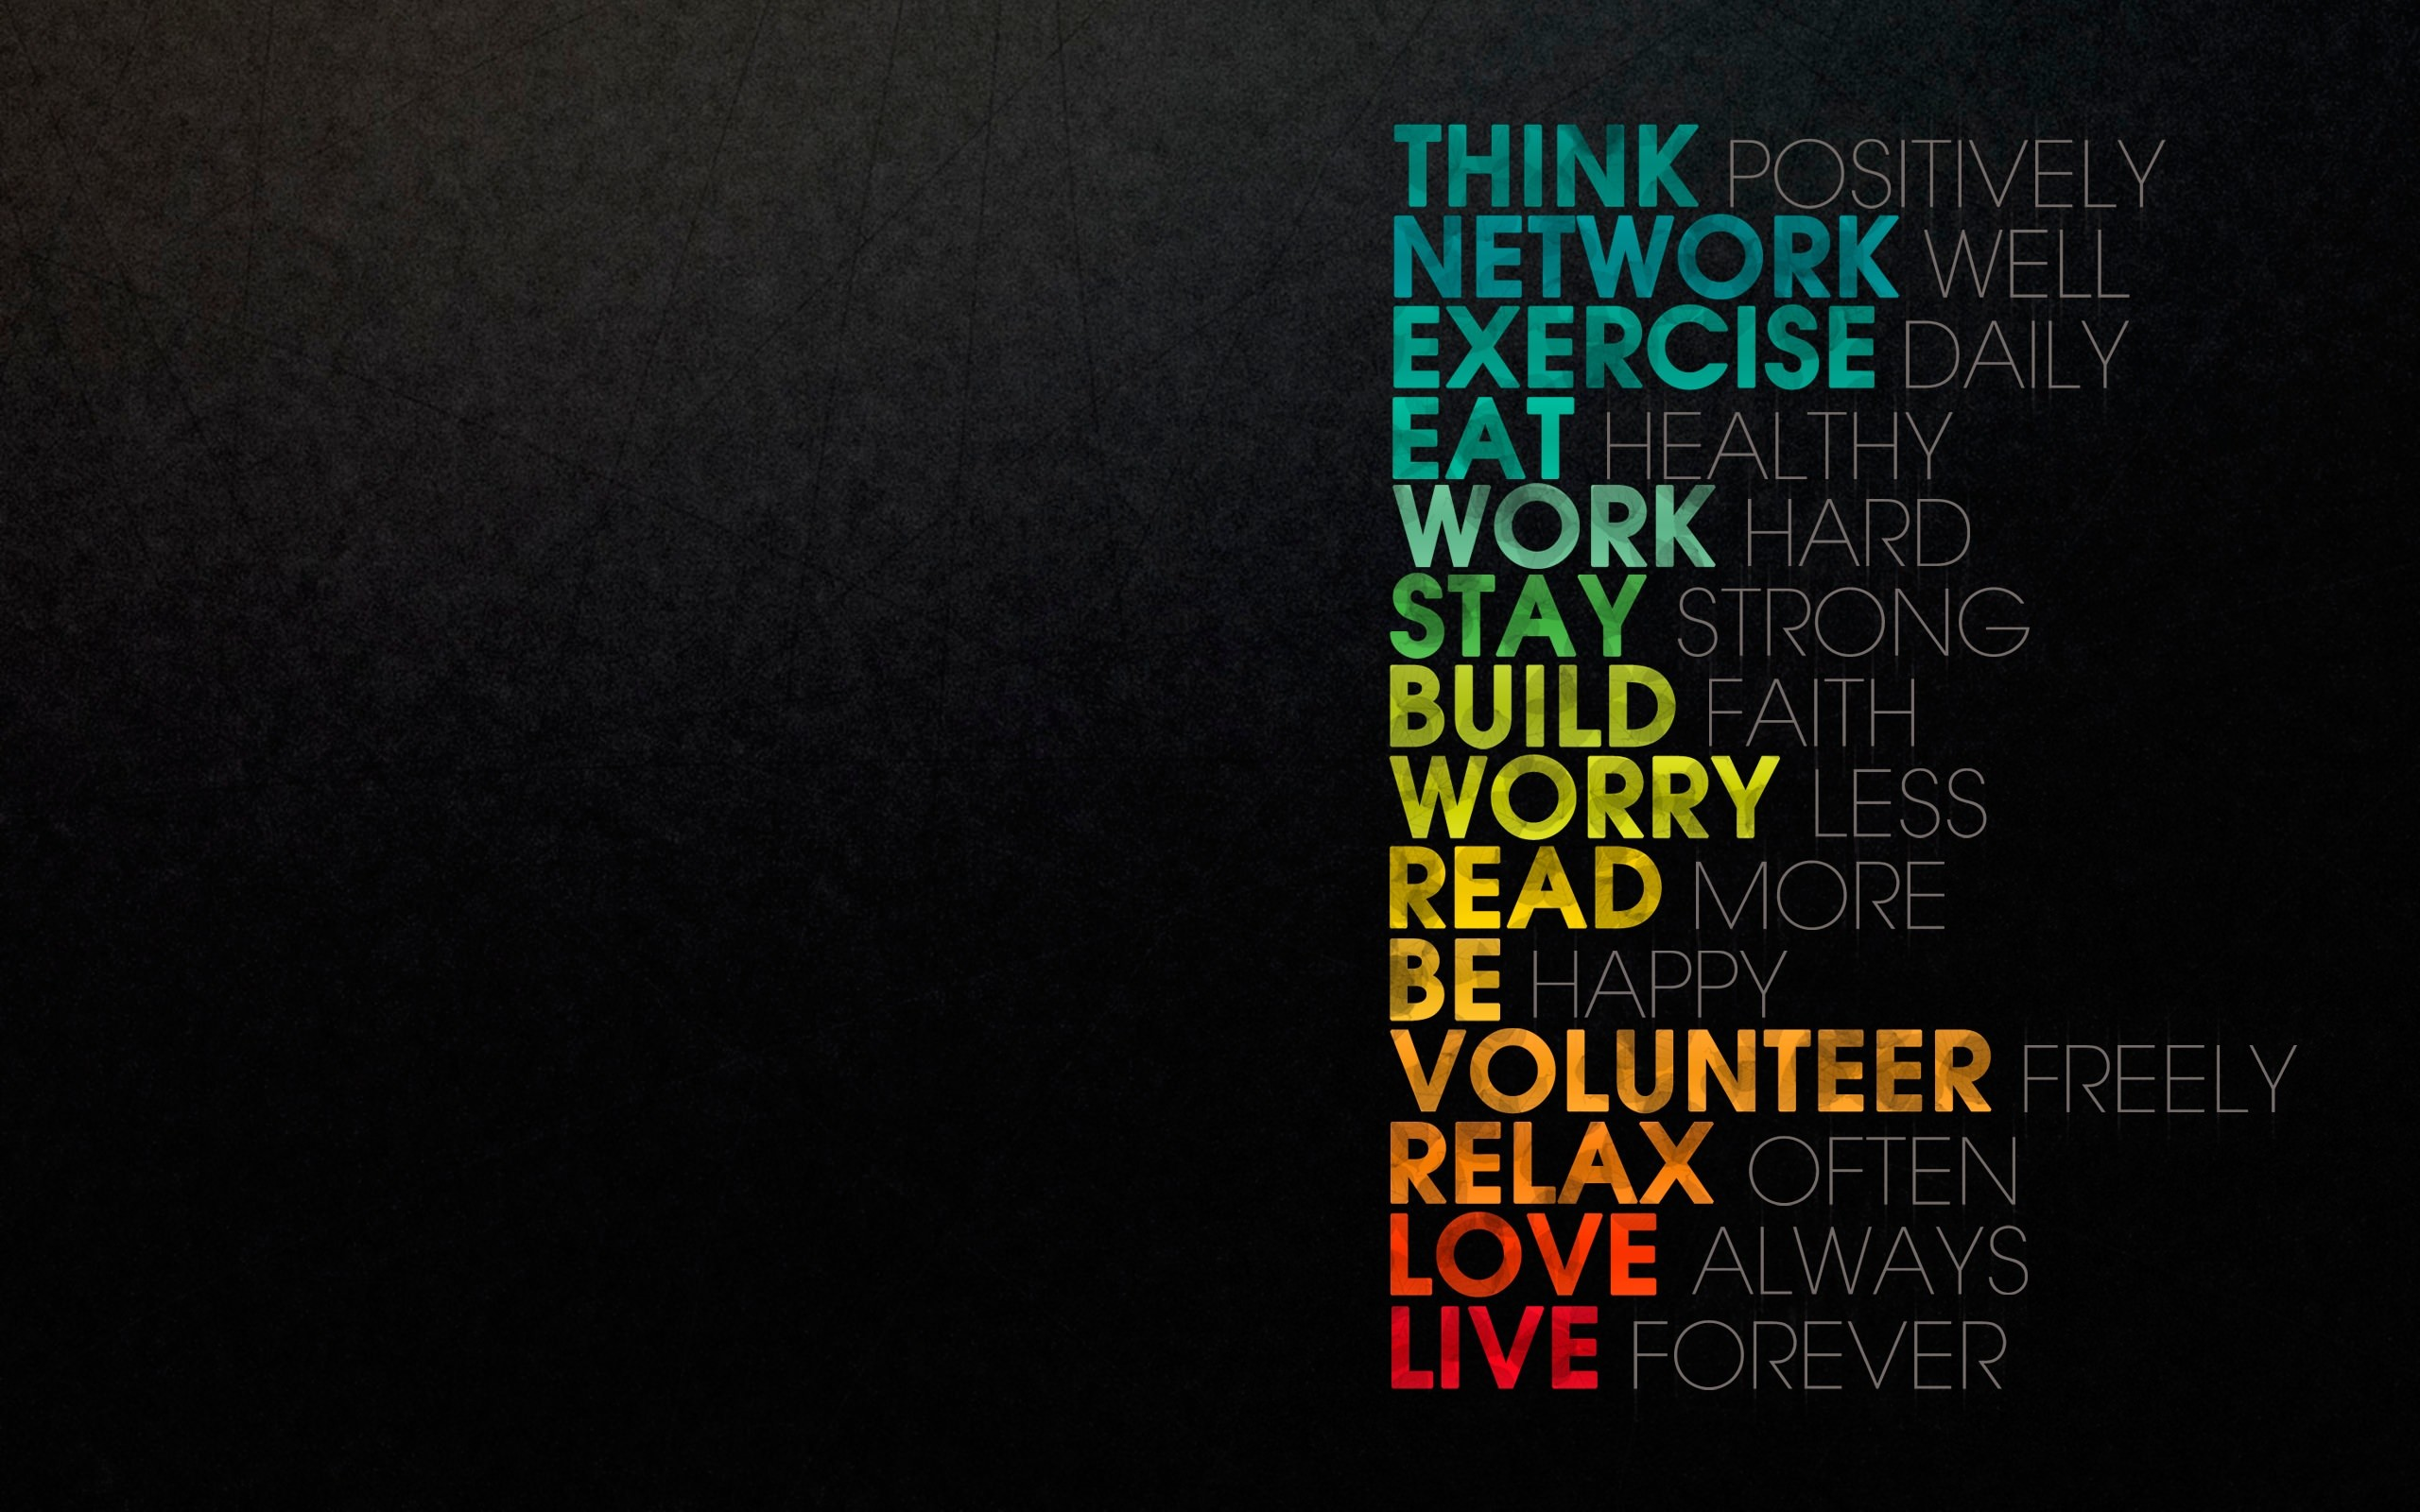 35 Inspirational Typography HD Wallpapers for Desktop, iPhone and .